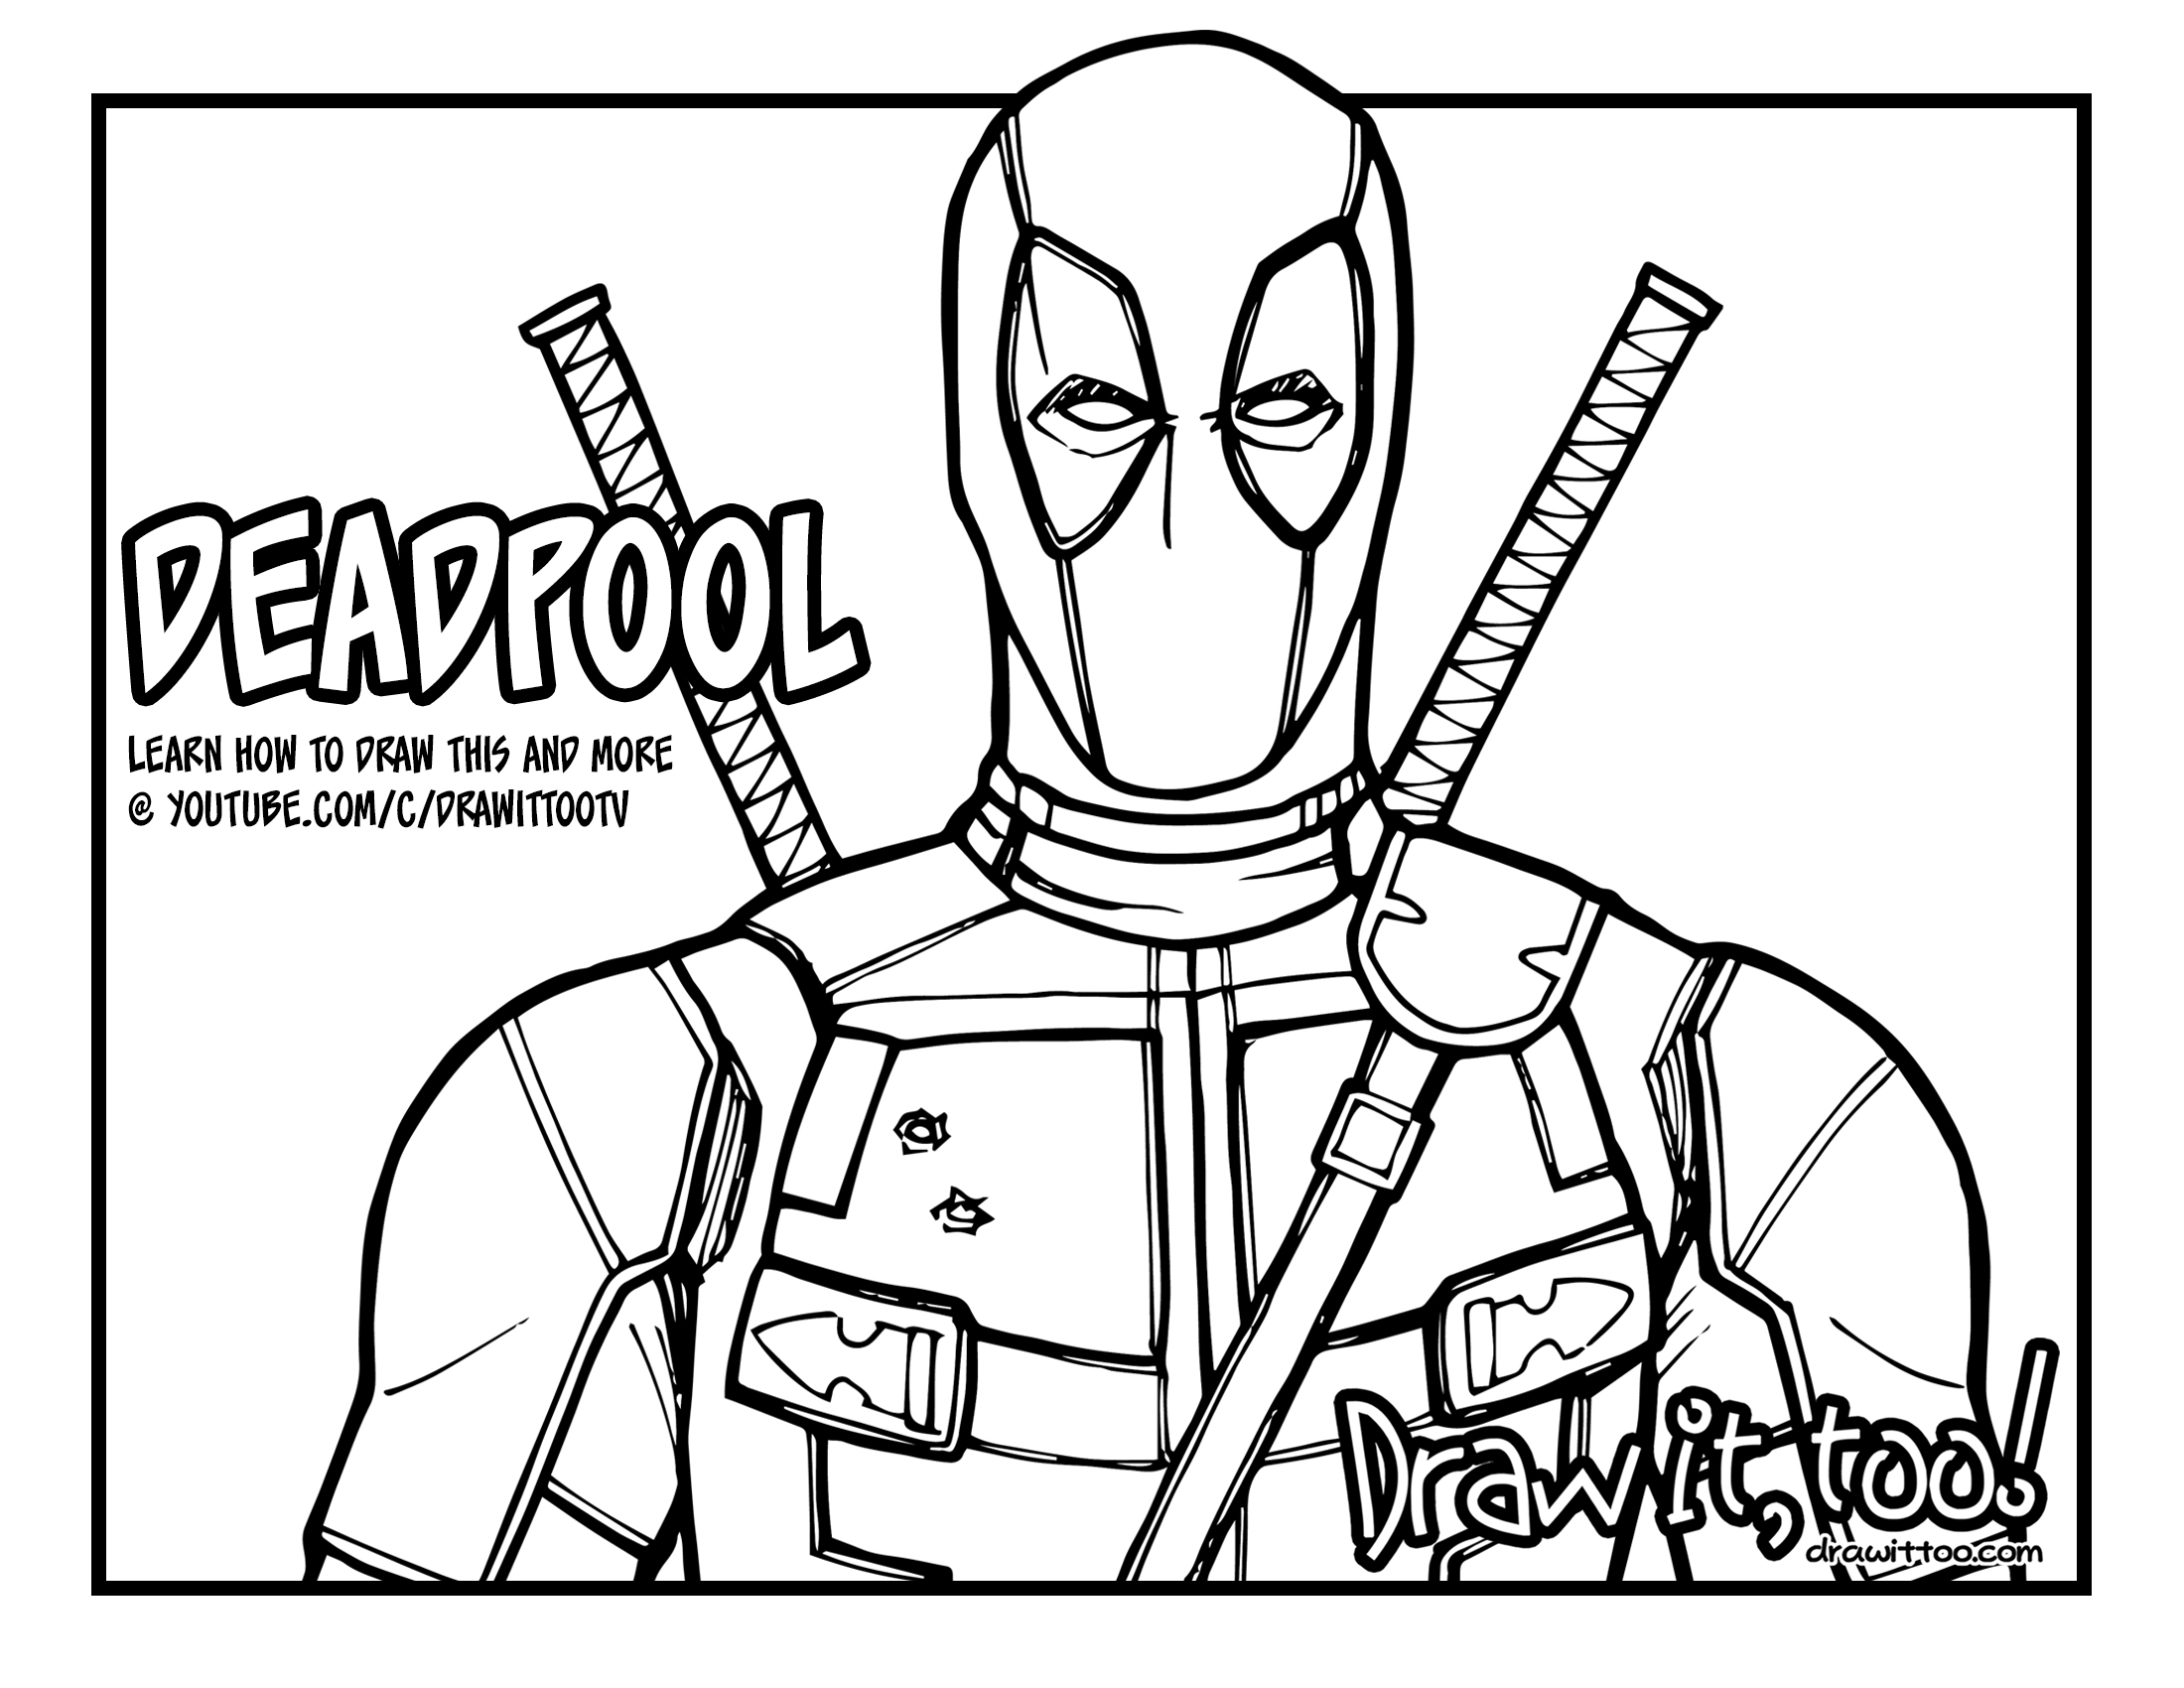 Deadpool_coloring_page